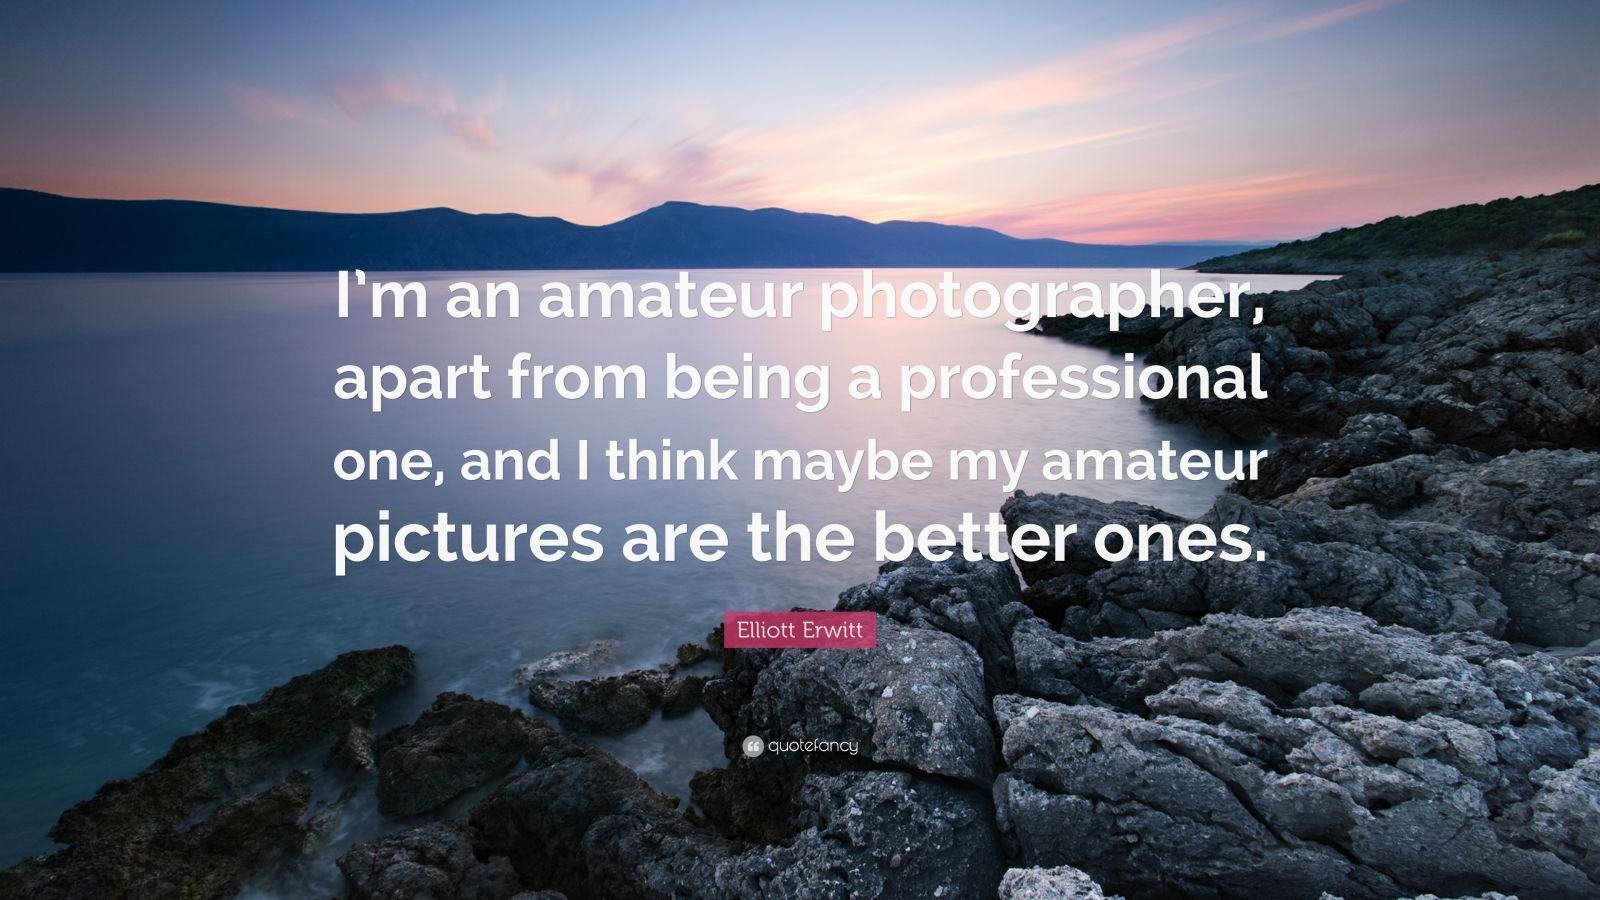 """Elliott Erwitt Quote: """"I'm an amateur photographer, apart from being a professional one, and I think maybe my amateur pictures are the better ones."""""""